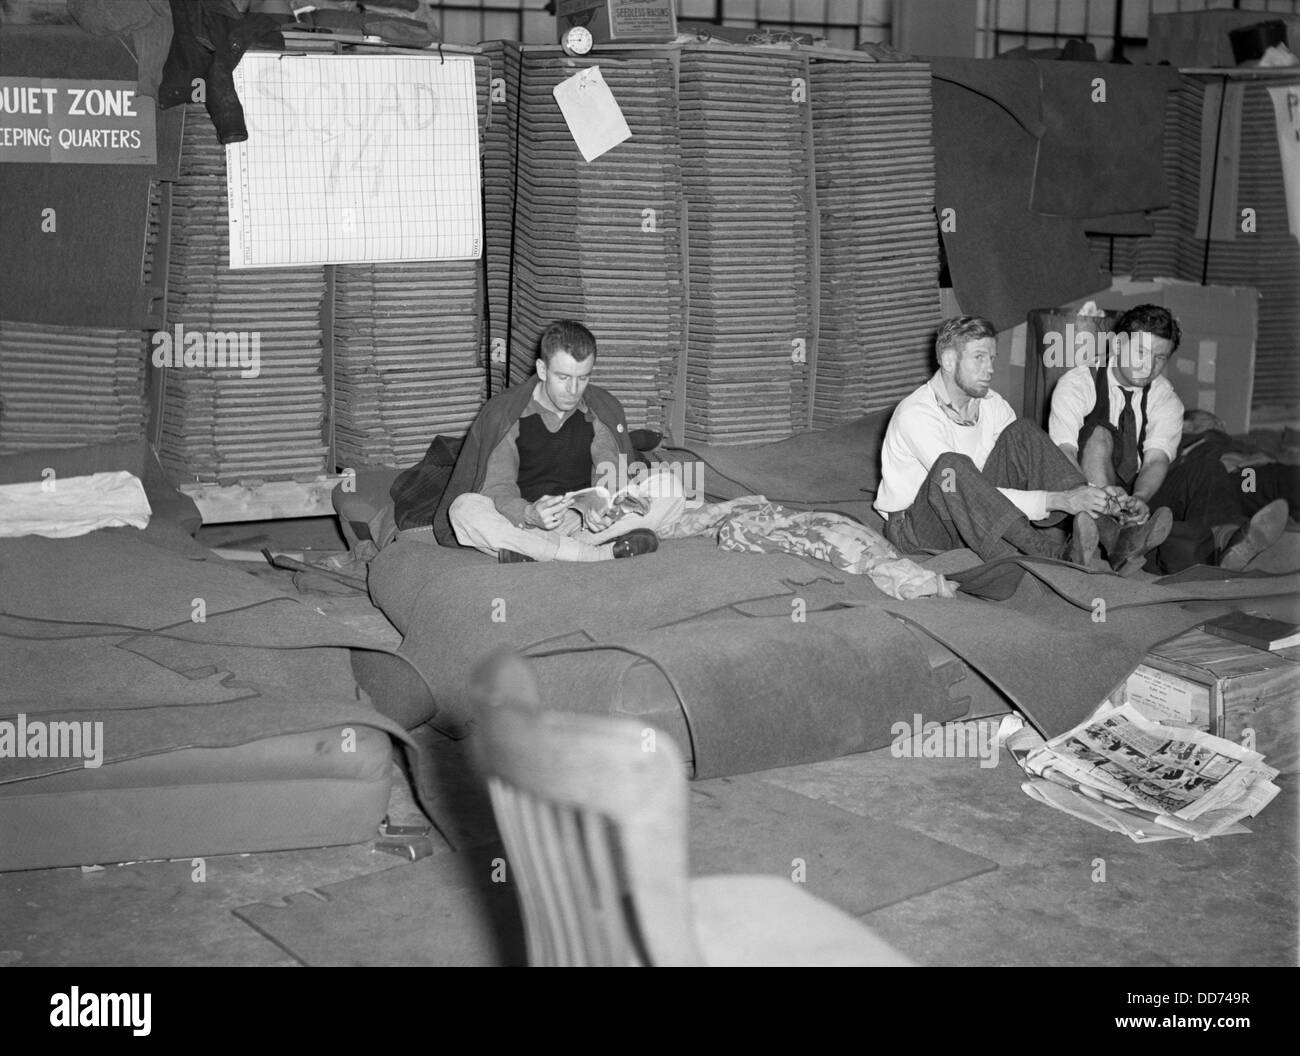 Sit-down strikers in the General Motors Fisher body plant in Flint, Michigan. 1933. Sleeping quarters for striking Stock Photo